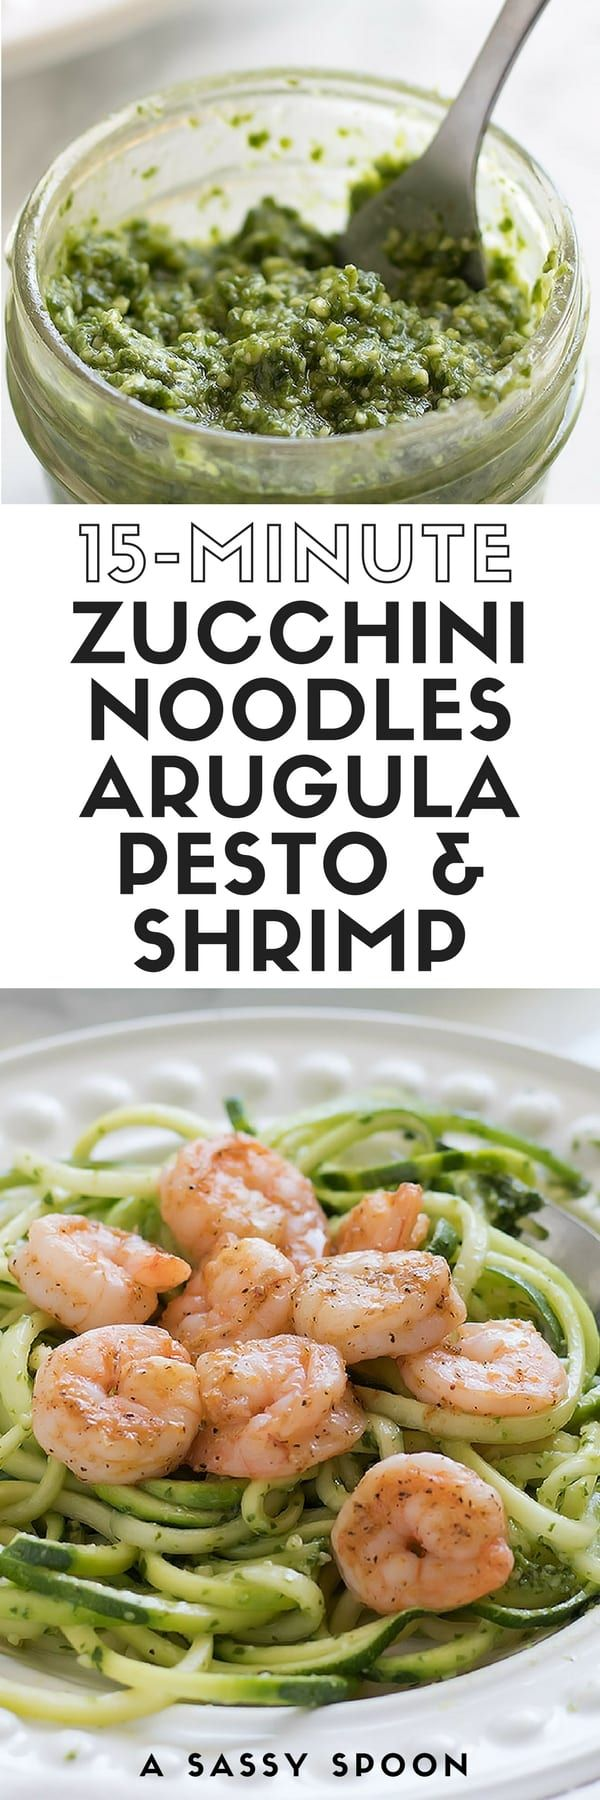 15-Minute Zucchini Noodles with Arugula Pesto + Shrimp